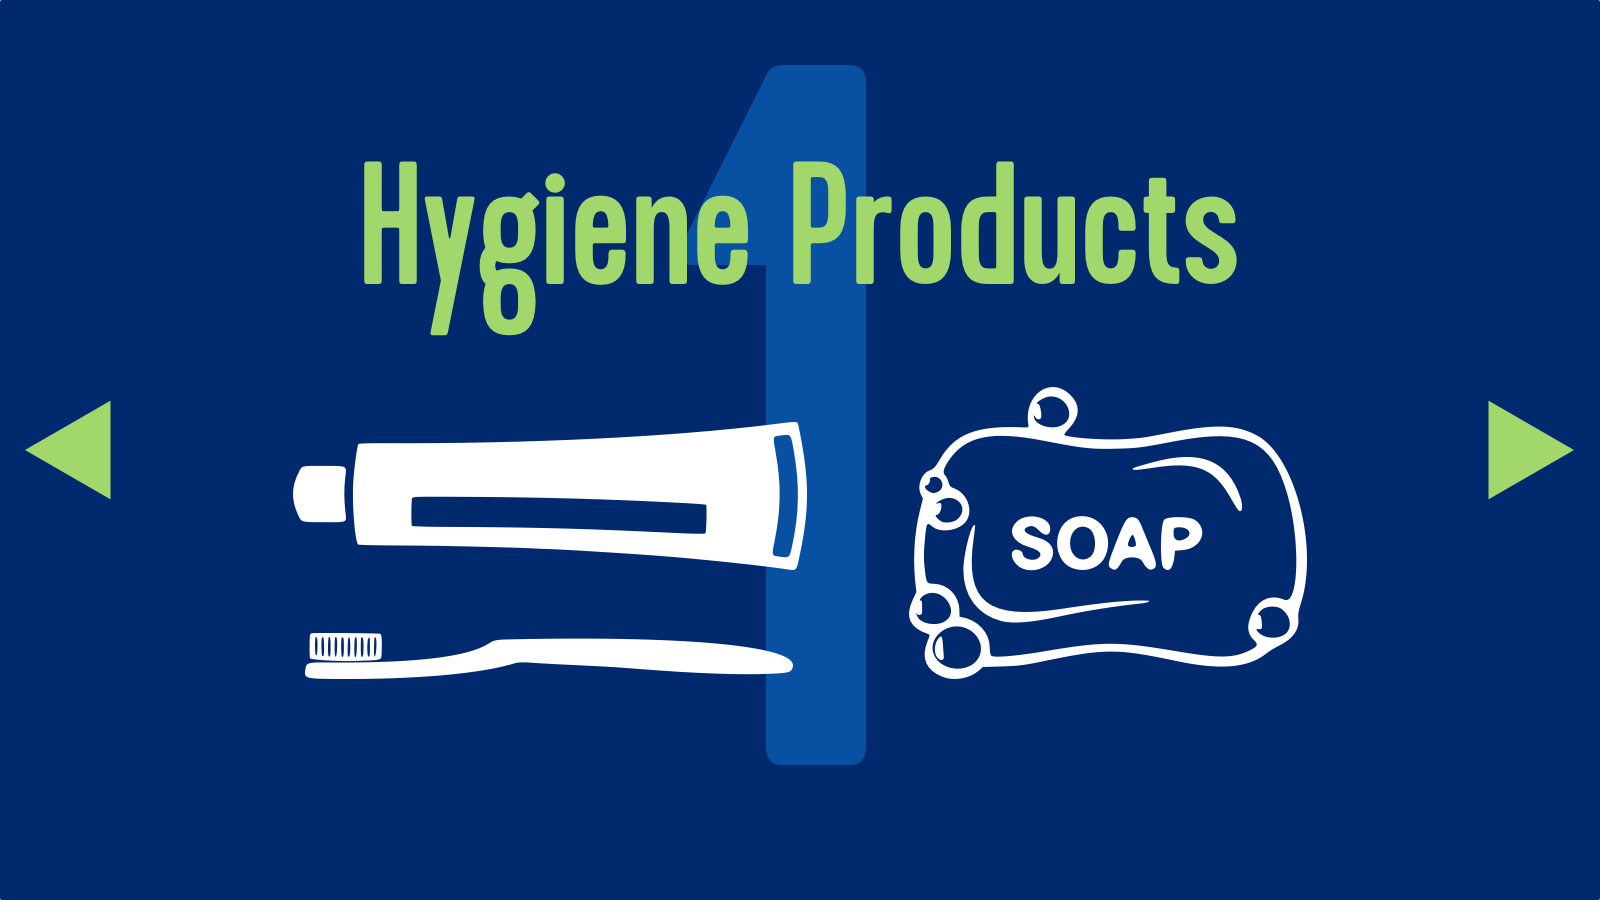 Hygiene Products.png